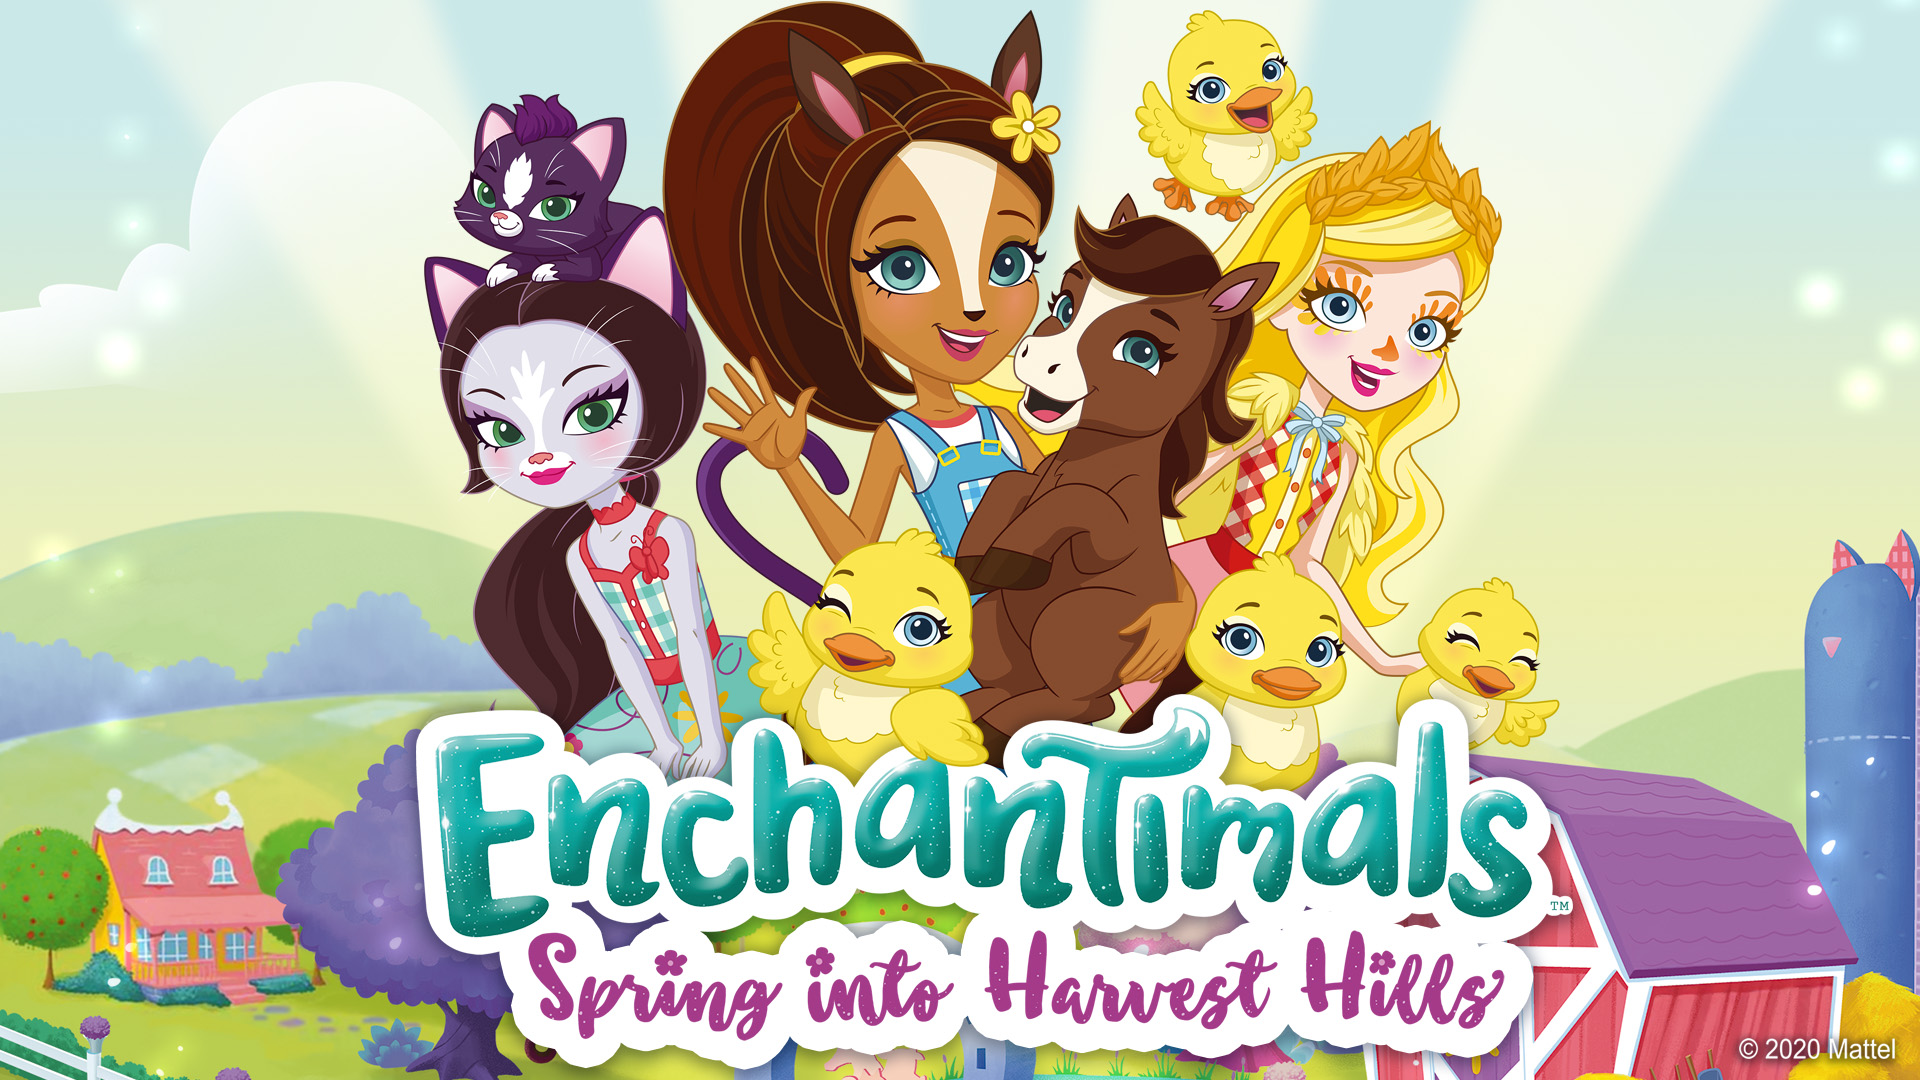 Enchantimals Spring into Harvest Hills